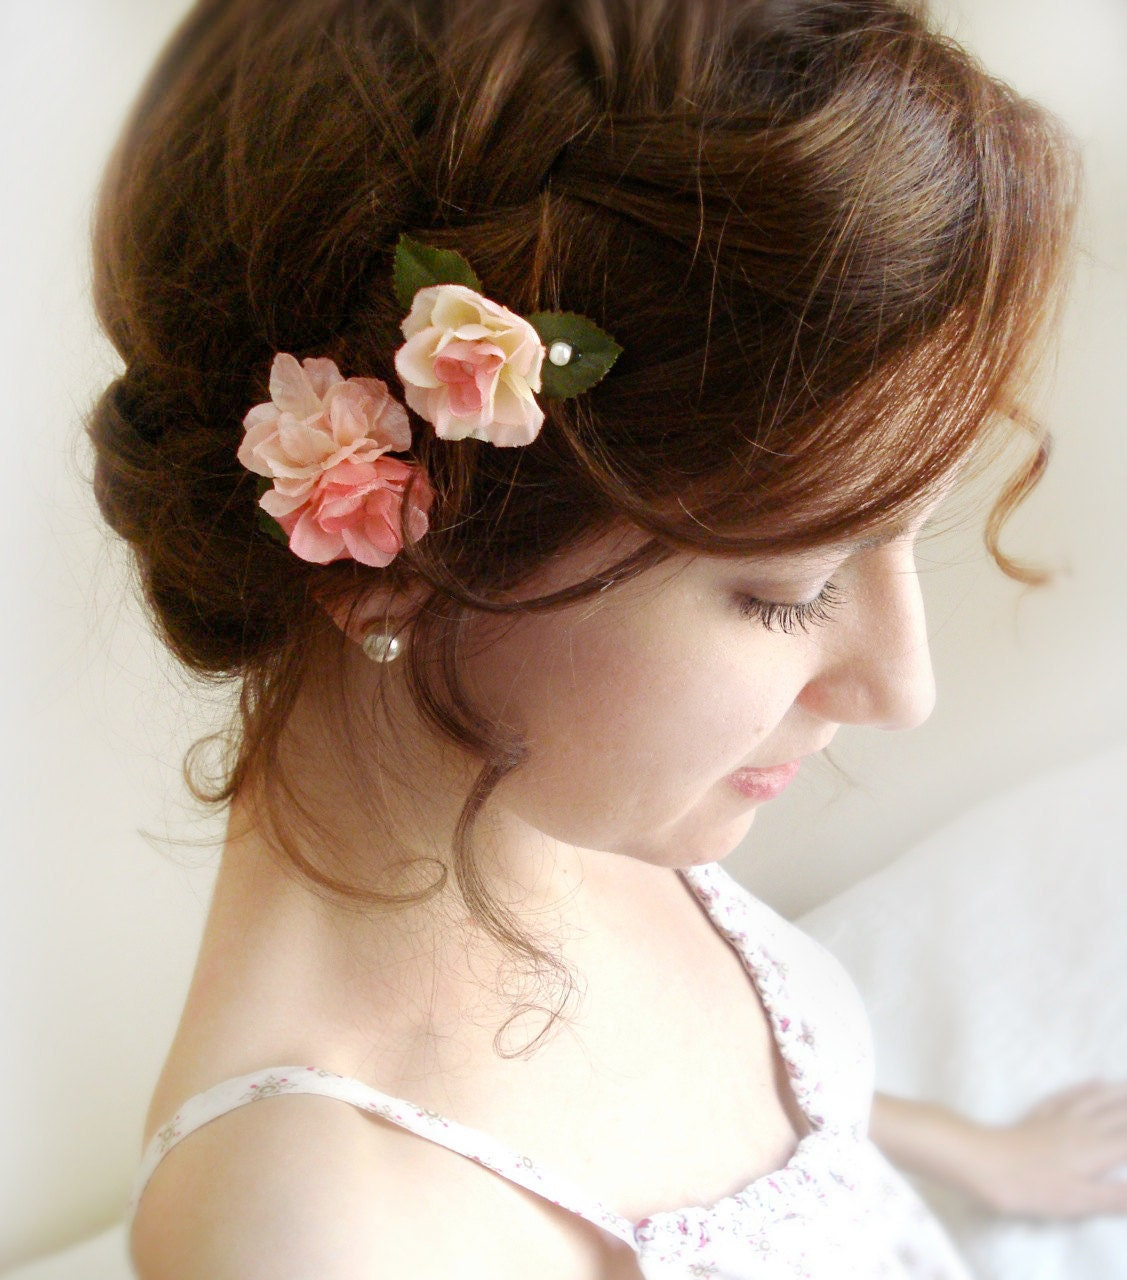 Find great deals on eBay for flower pins for hair. Shop with confidence.